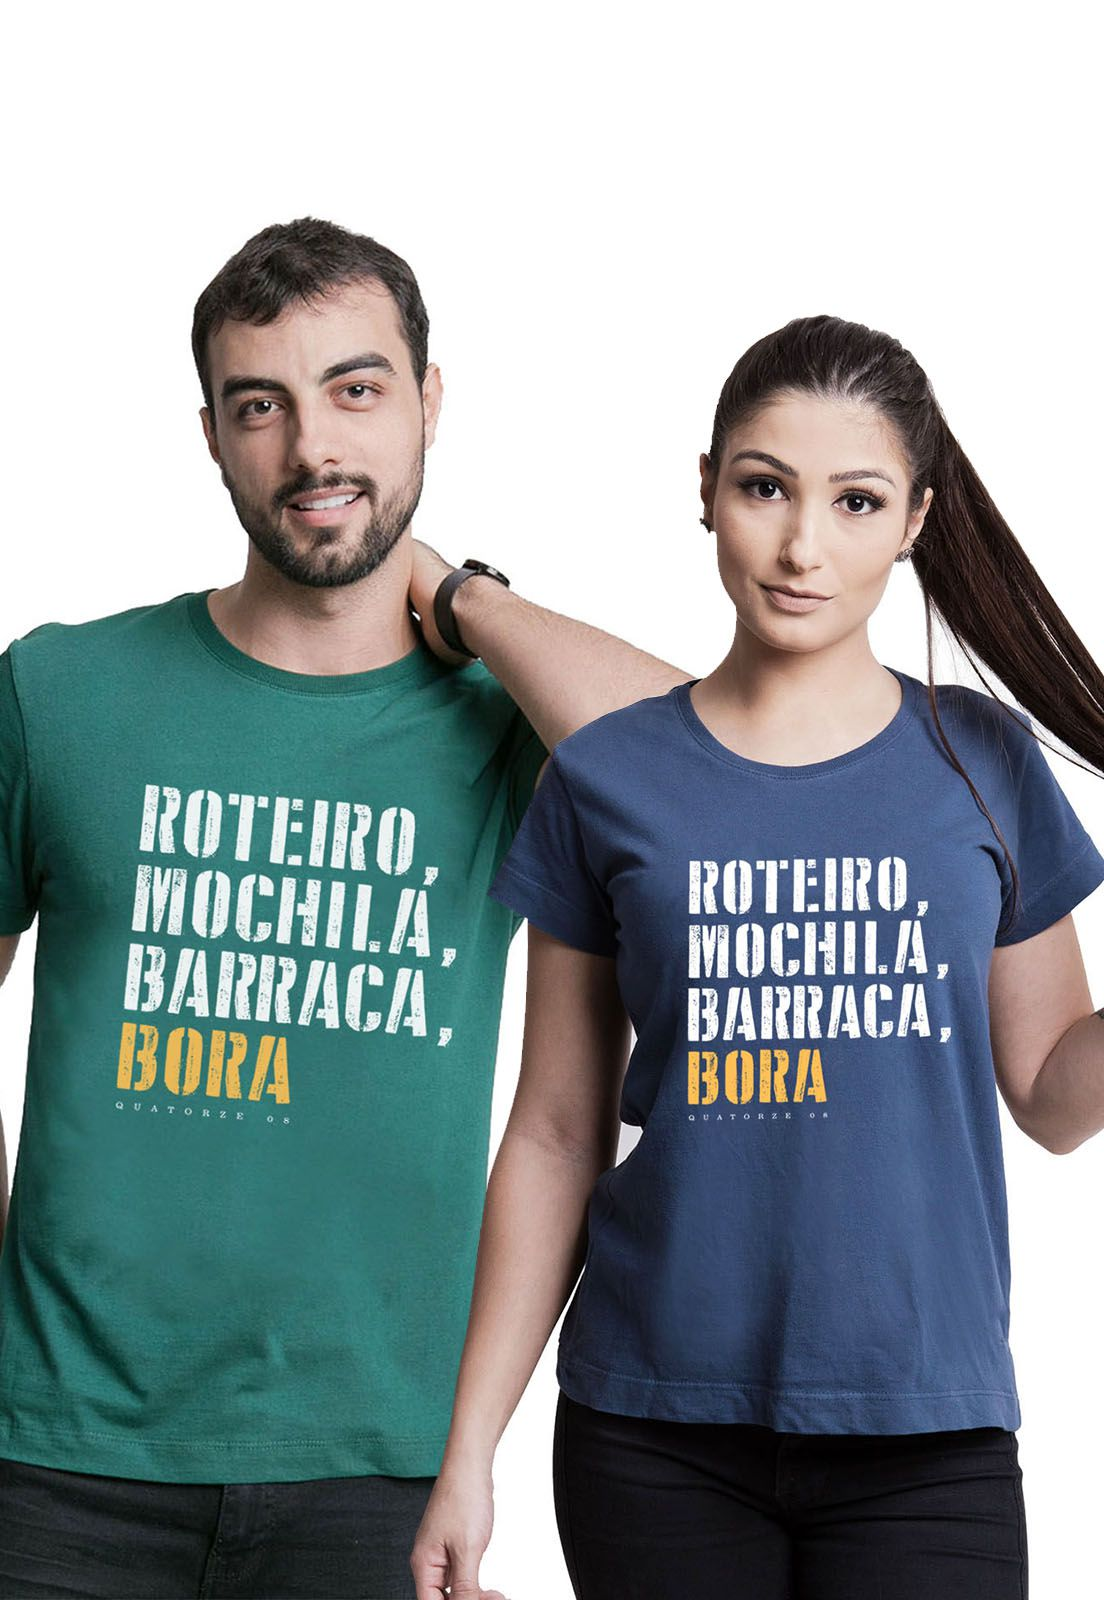 Kit Camisetas Barraca e Bora